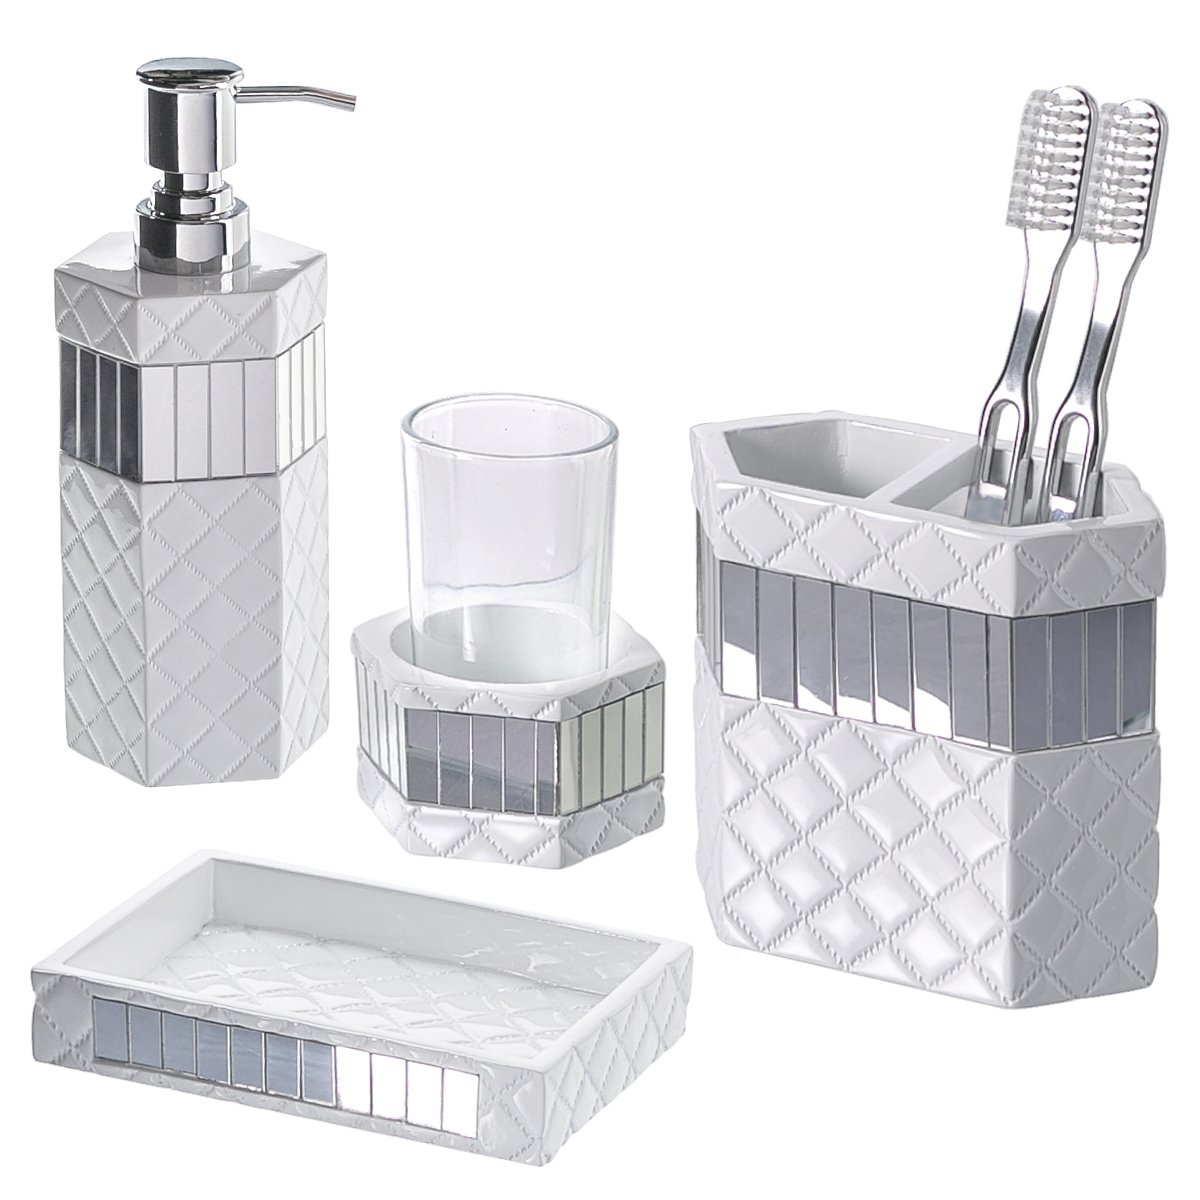 bathroom accessories sets silver. Creative Scents Quilted Mirror Bathroom Accessories Set, 4-Piece, Includes Soap Dispenser, Sets Silver O